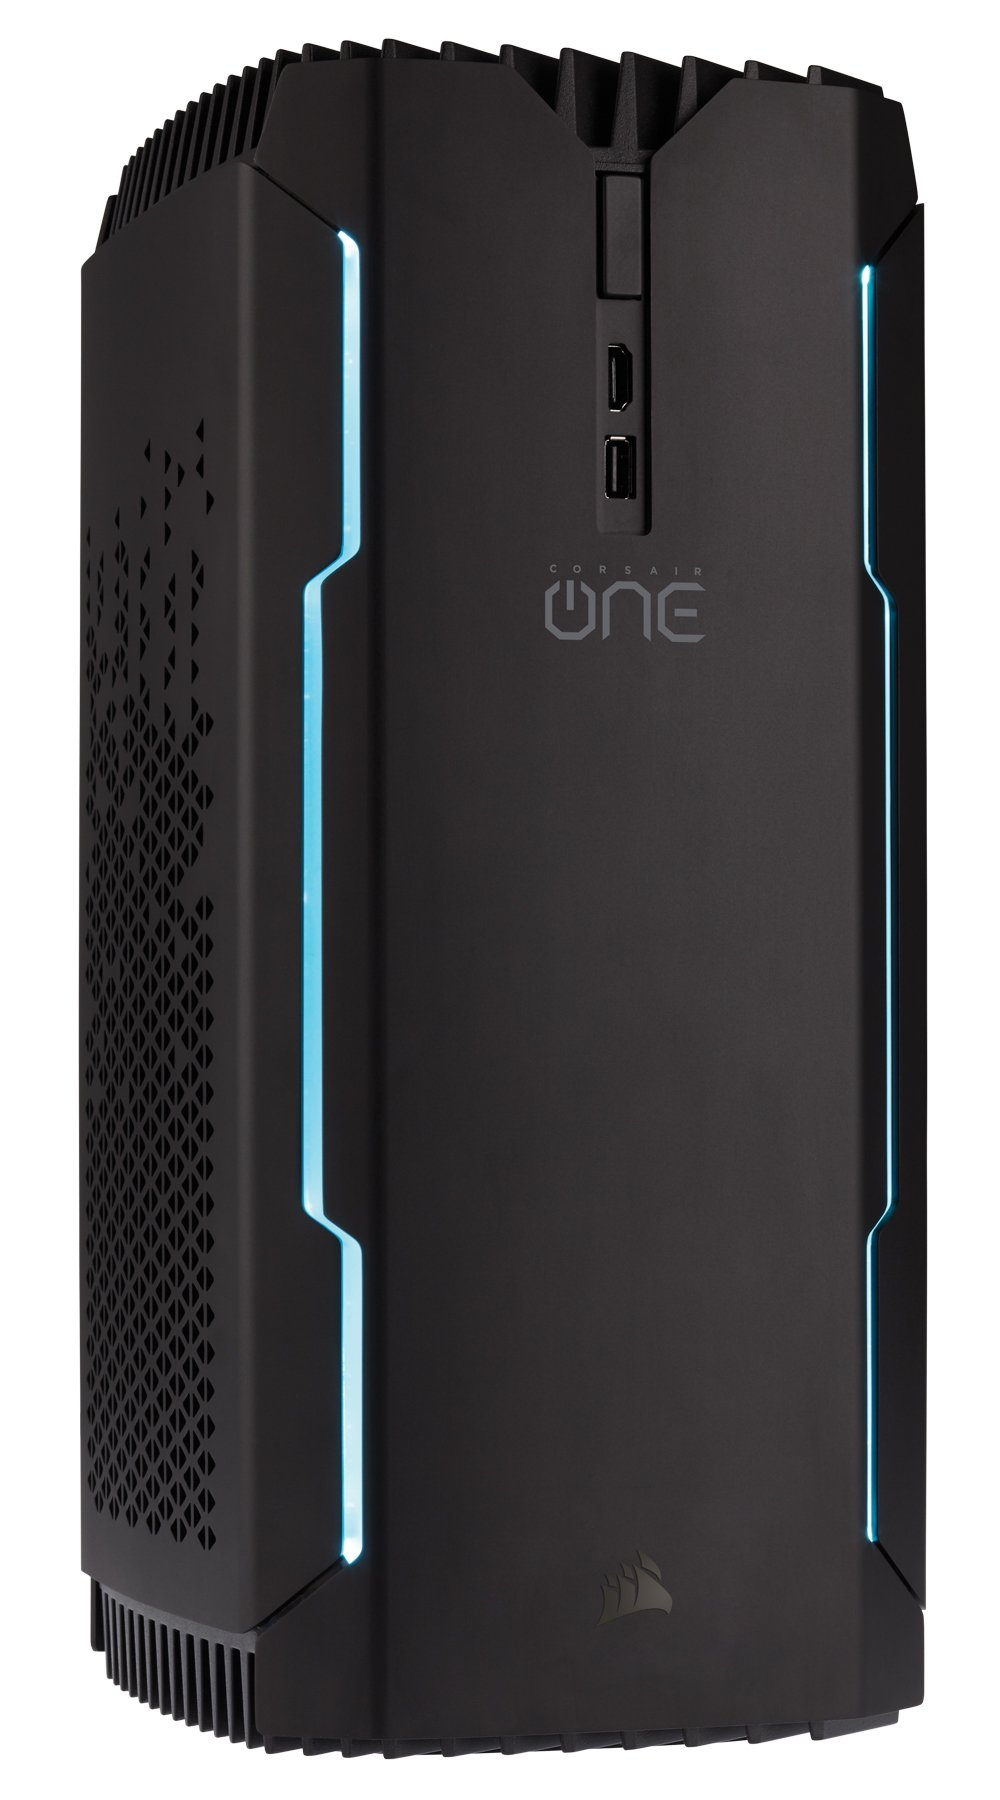 The Best Of Lds General Conference 2014 Quotes: Corsair One Gaming PC